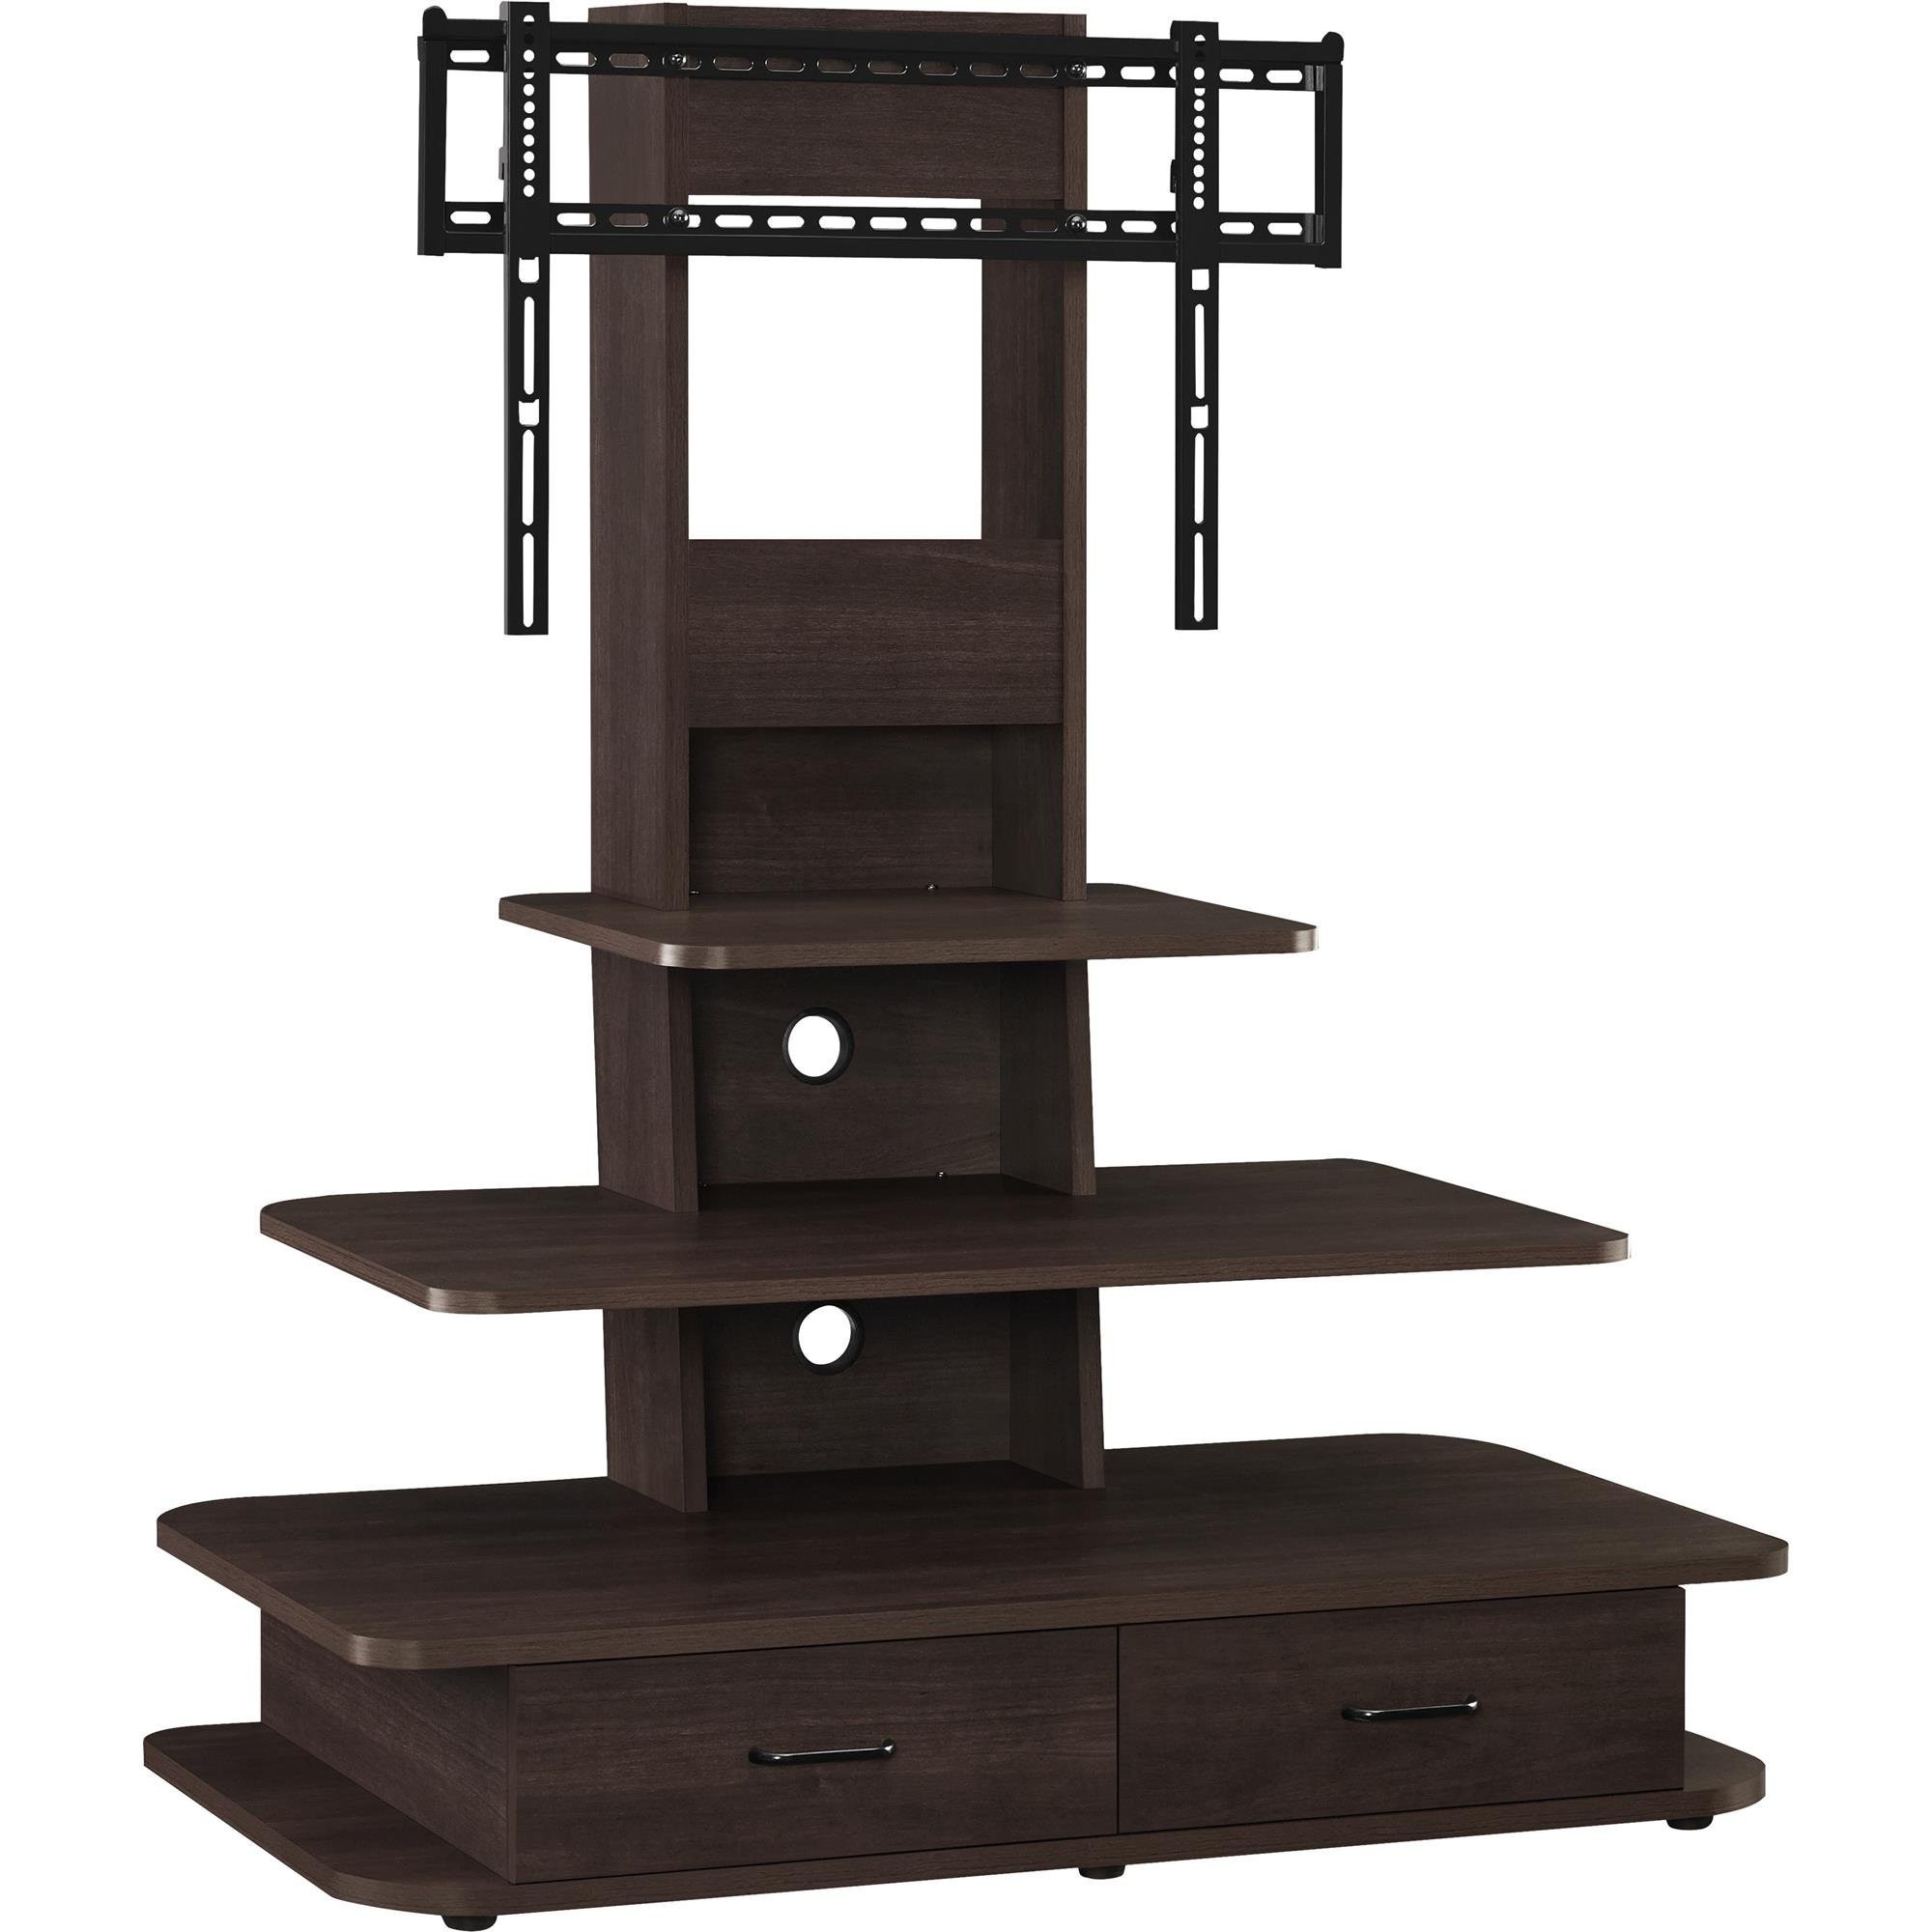 Ameriwood Home Galaxy TV Stand with Mount and Drawers for TVs up to 70'' Wide, Espresso by Ameriwood Home